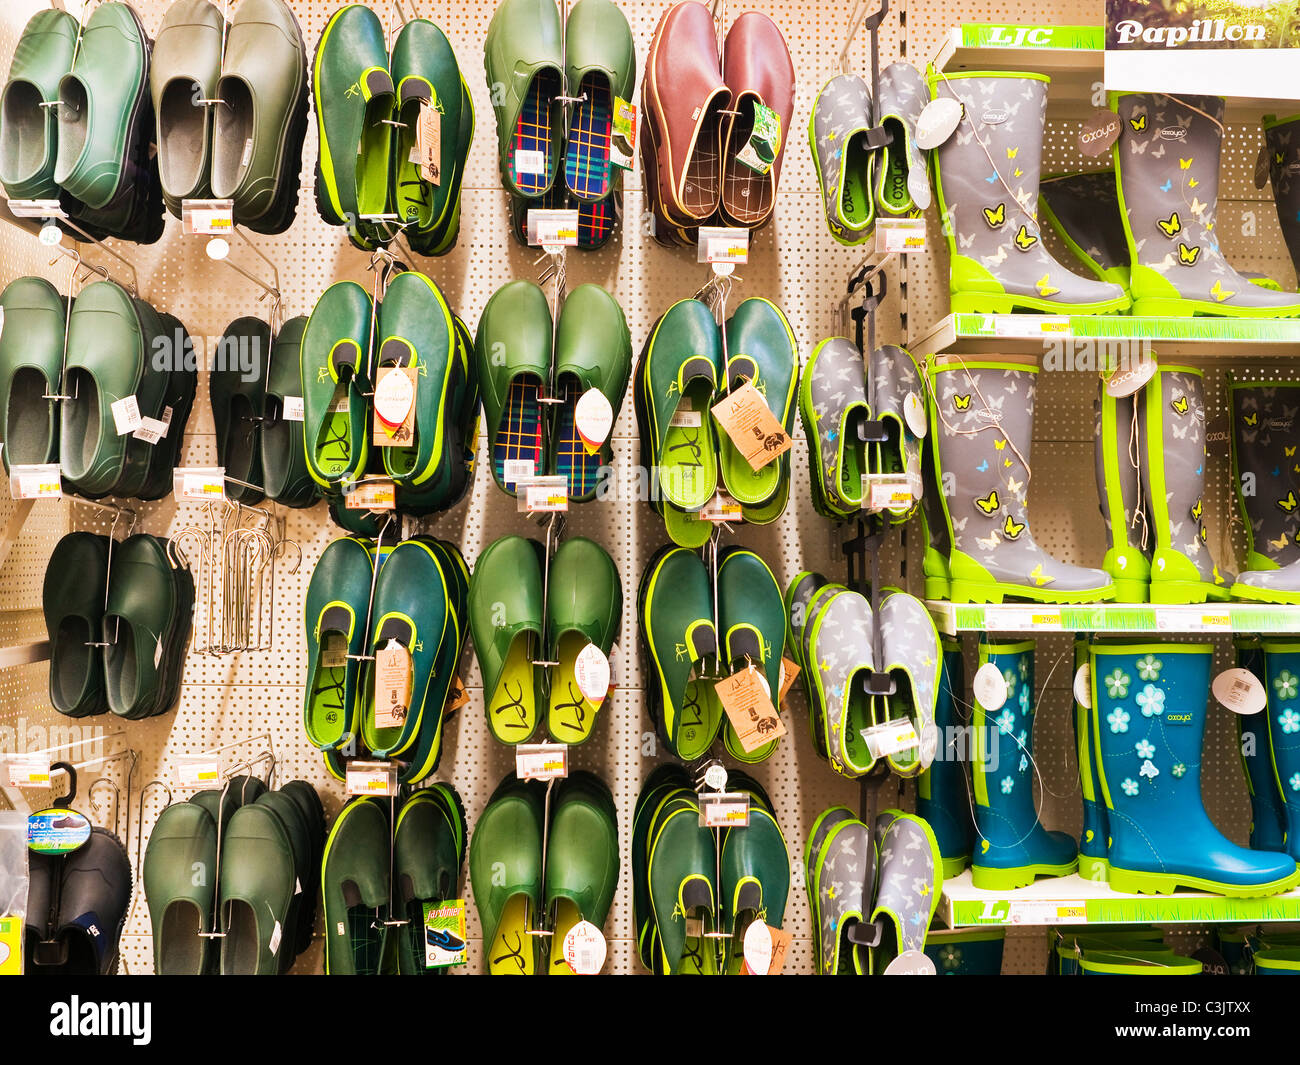 Gardening overshoes and Wellington boots display in supermarket - France. - Stock Image